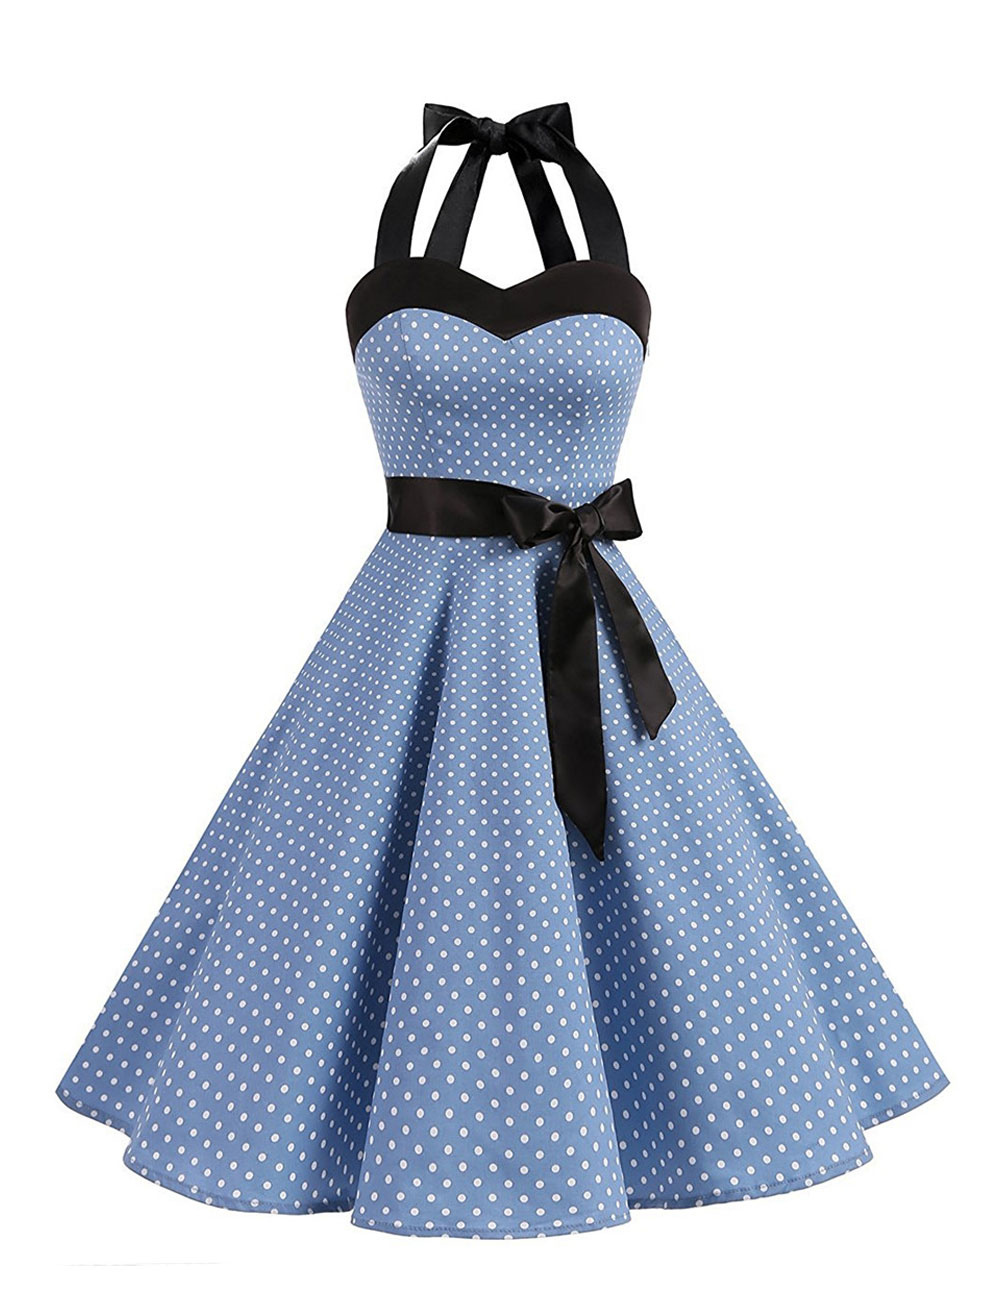 polka dot vintage dresses halter bows backless cotton retro pin up dress